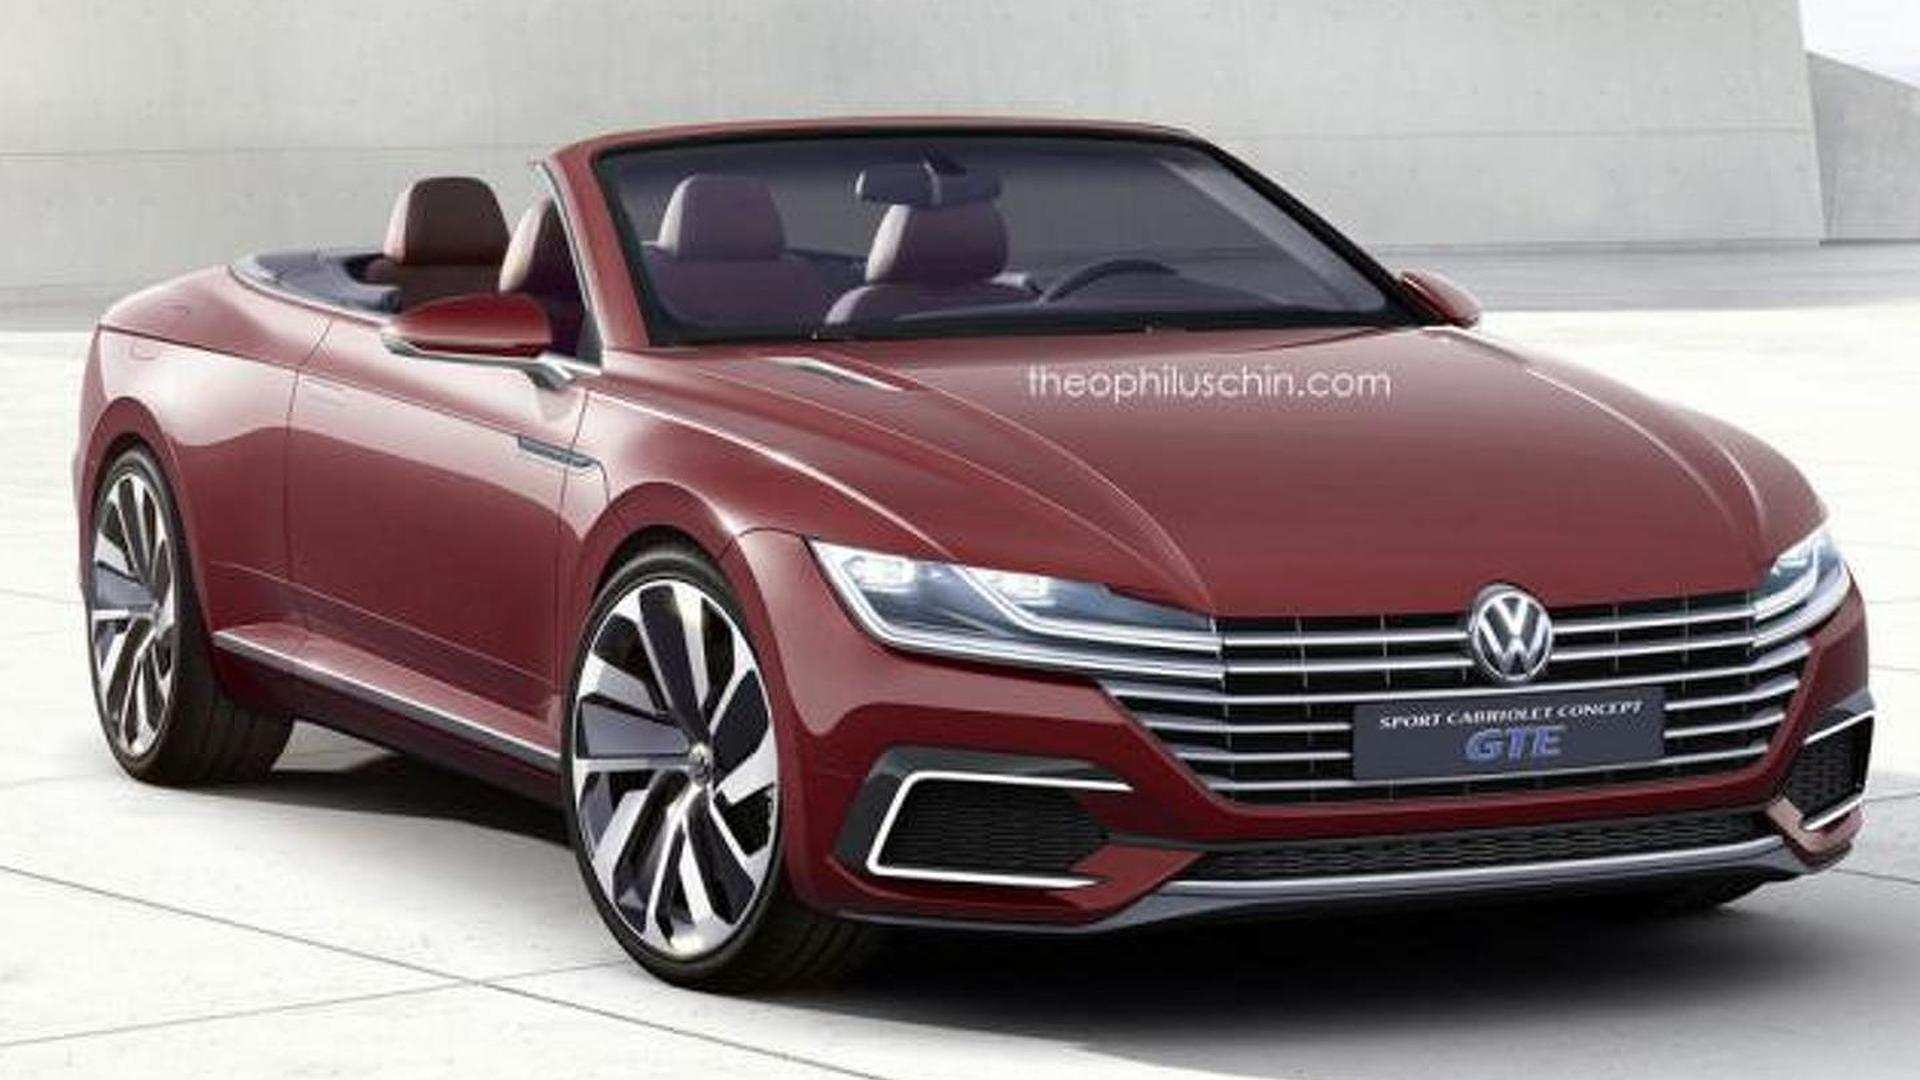 76 Concept of VW Eos 2020 Specs with VW Eos 2020